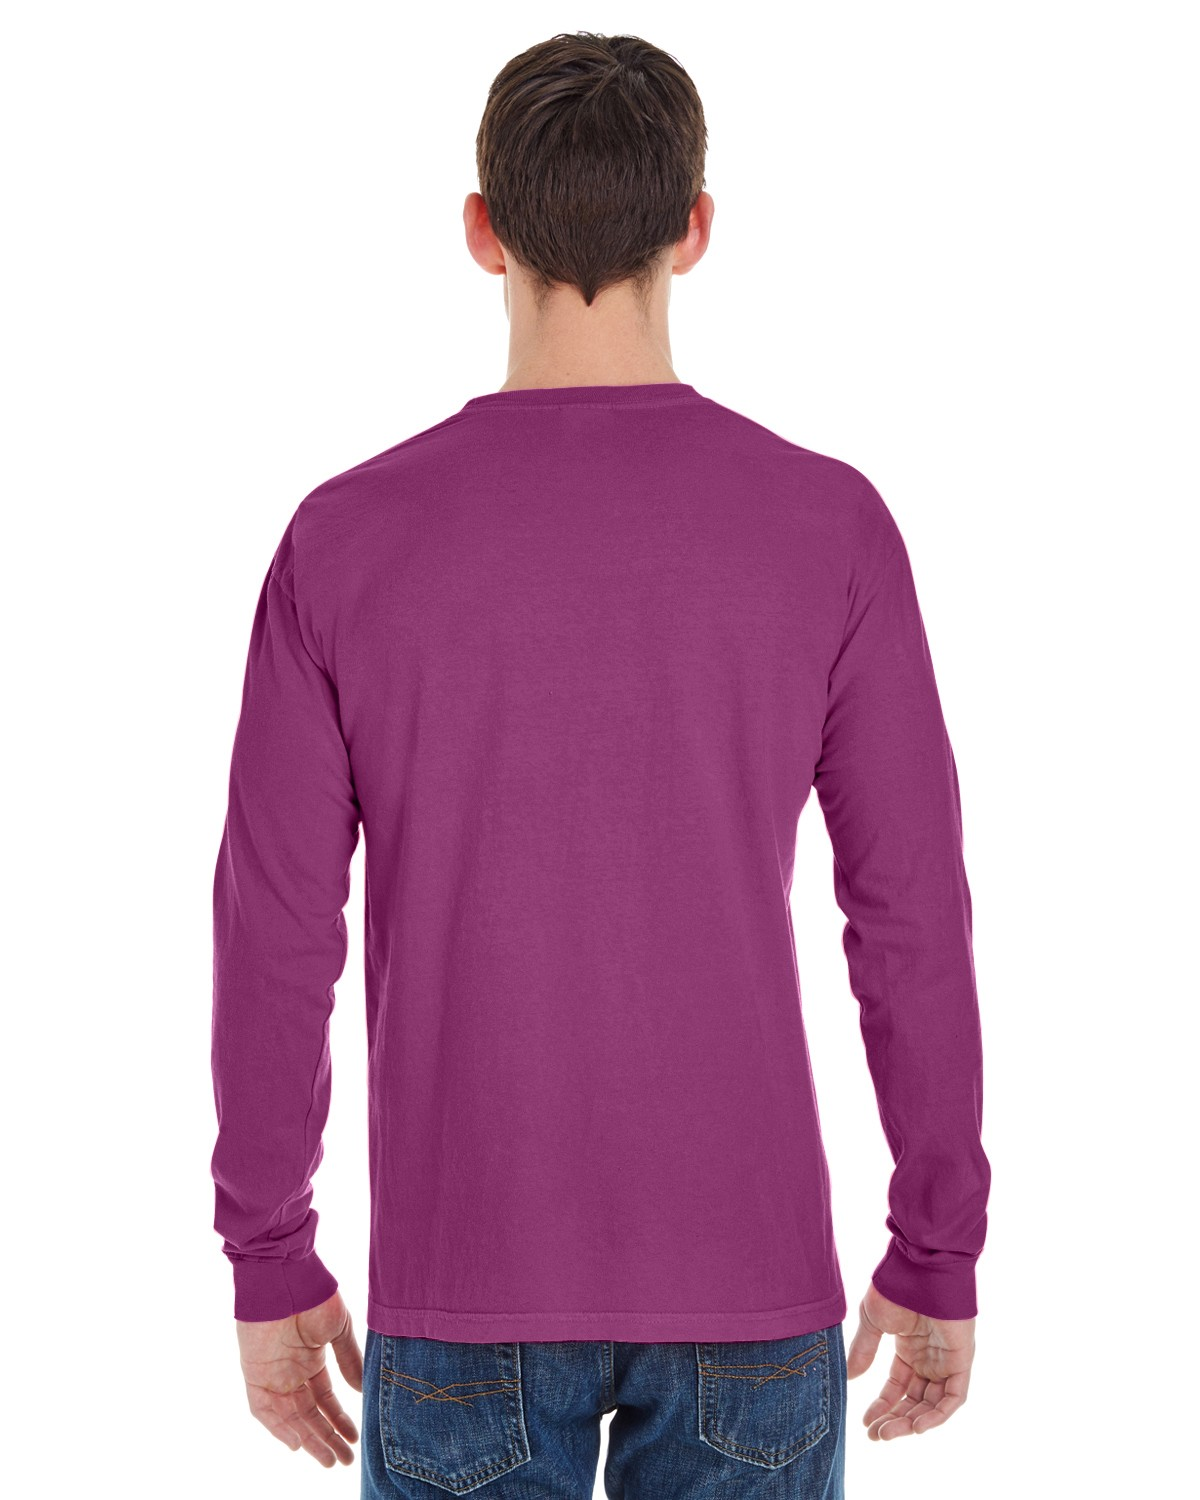 C6014 Comfort Colors BOYSENBERRY